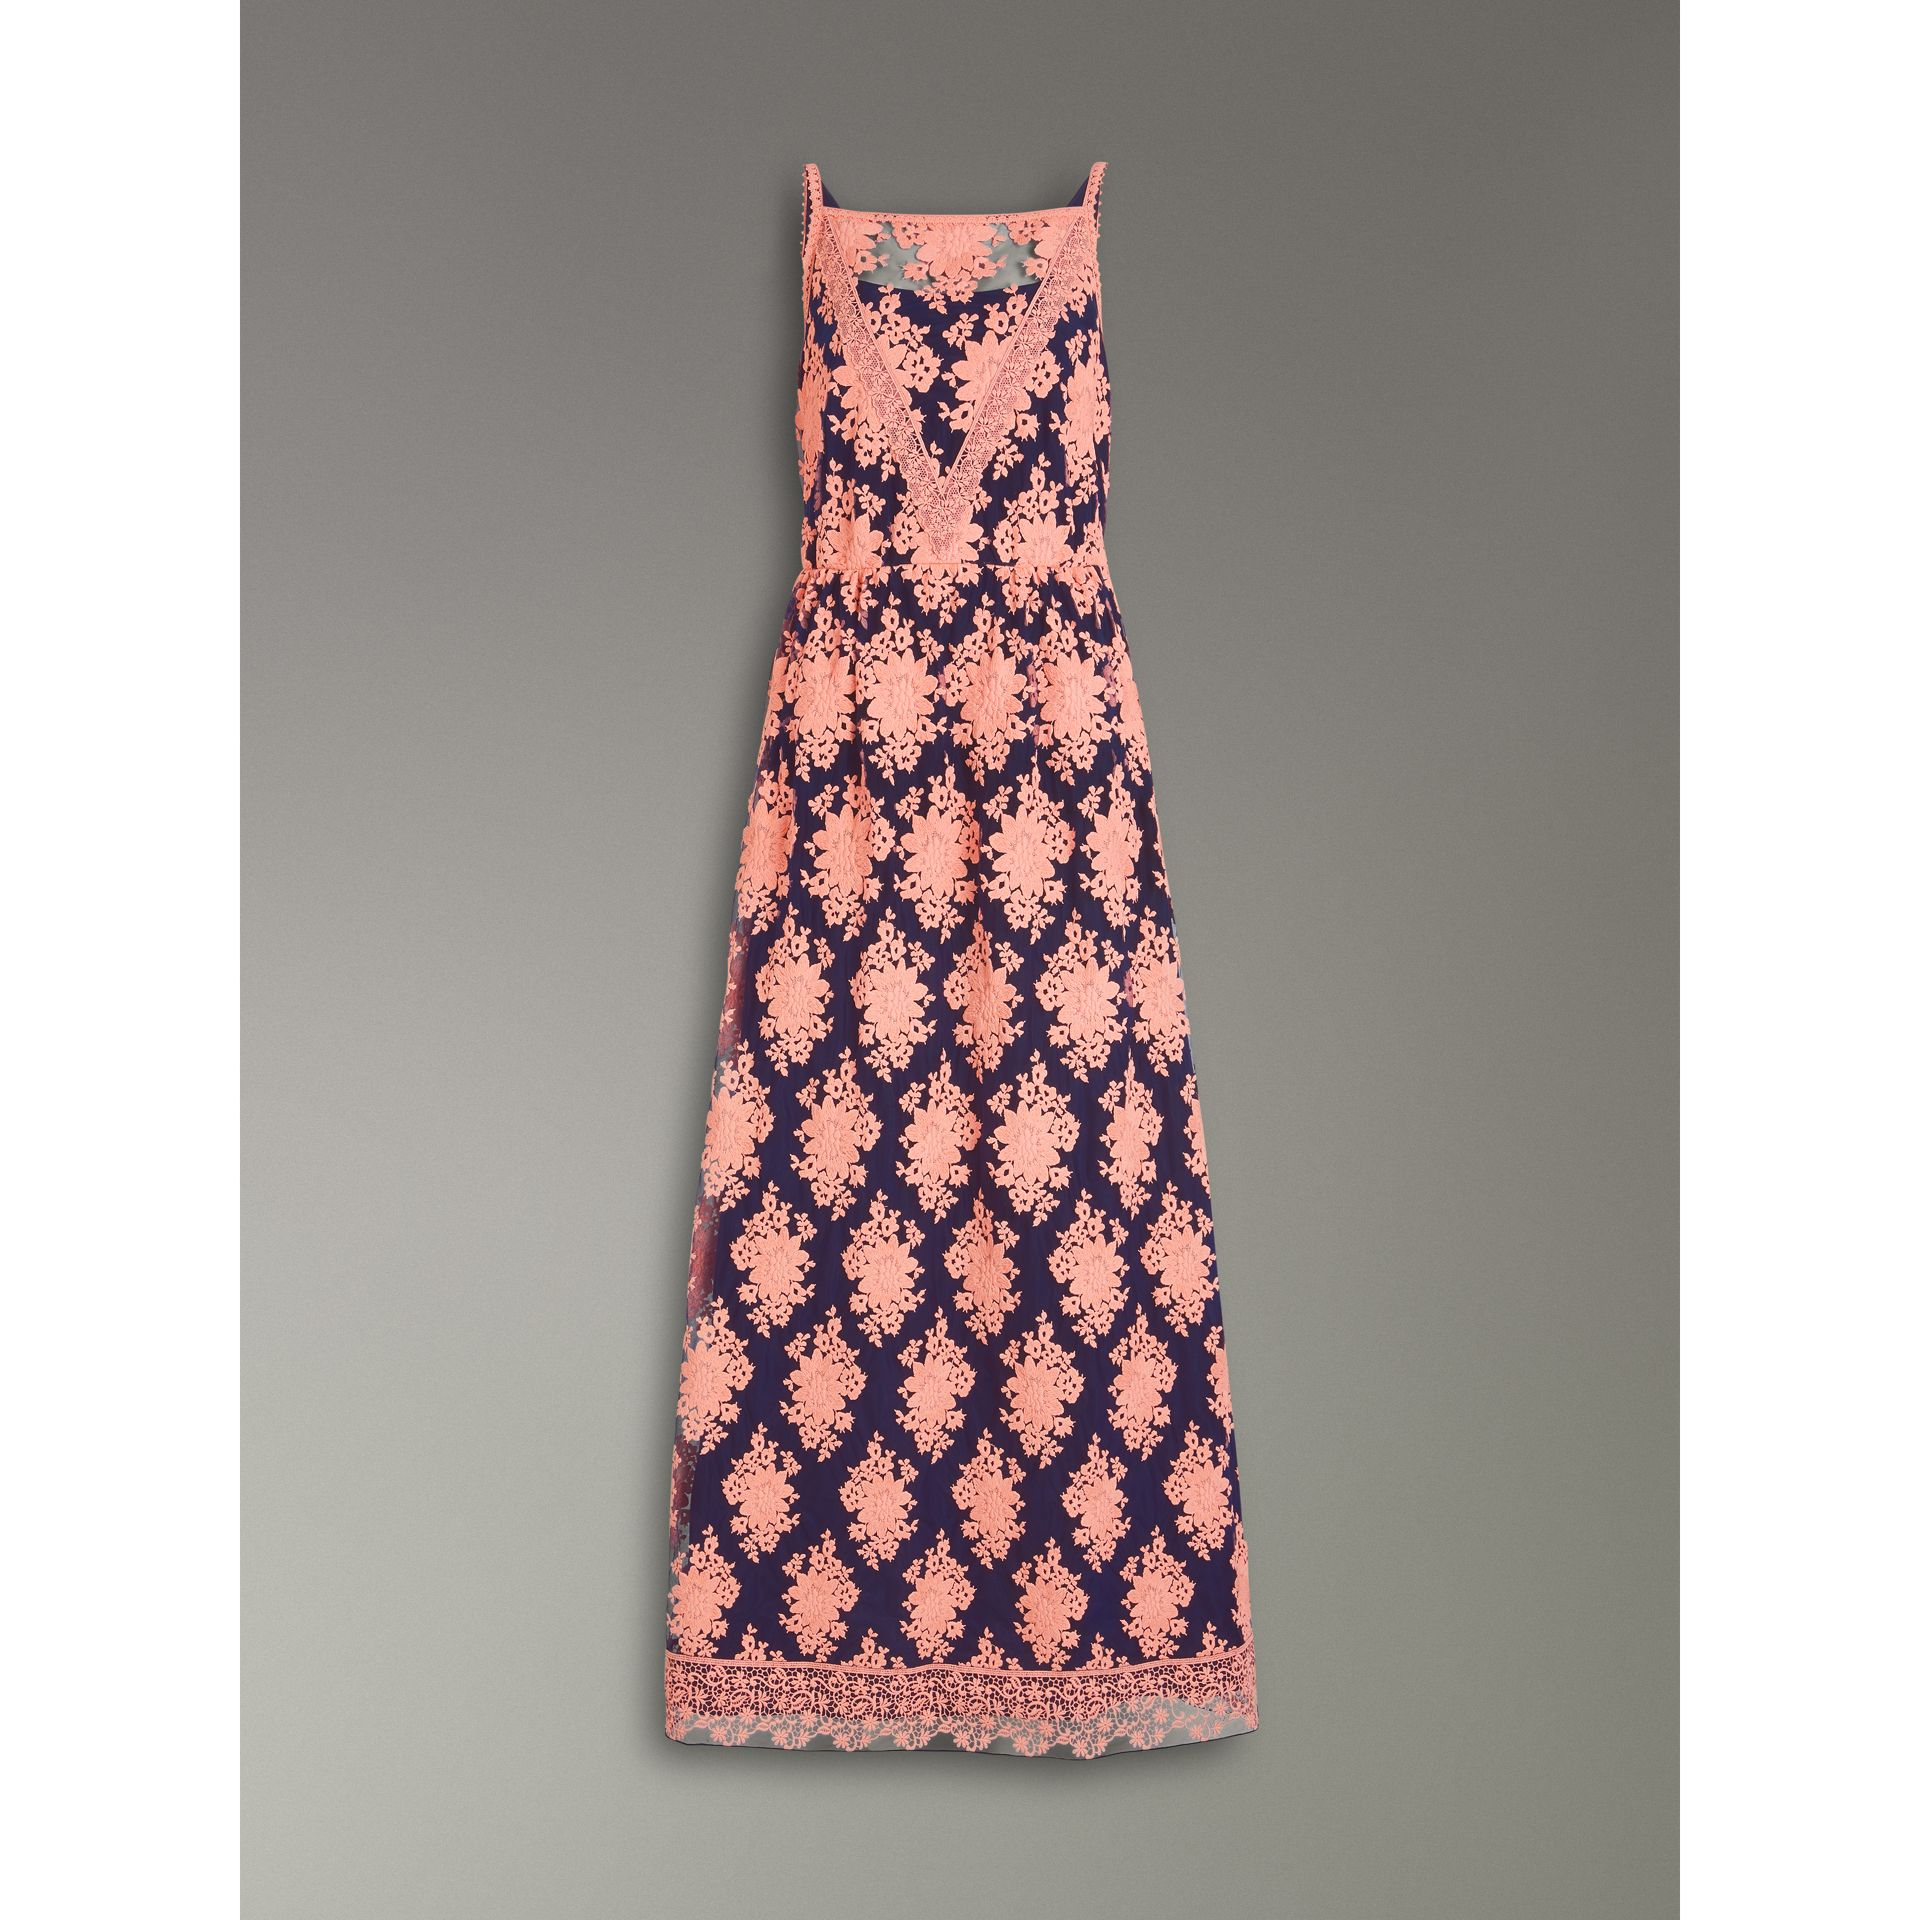 Floral-embroidered Sleeveless Dress in Rose/midnight Blue - Women | Burberry United Kingdom - gallery image 3